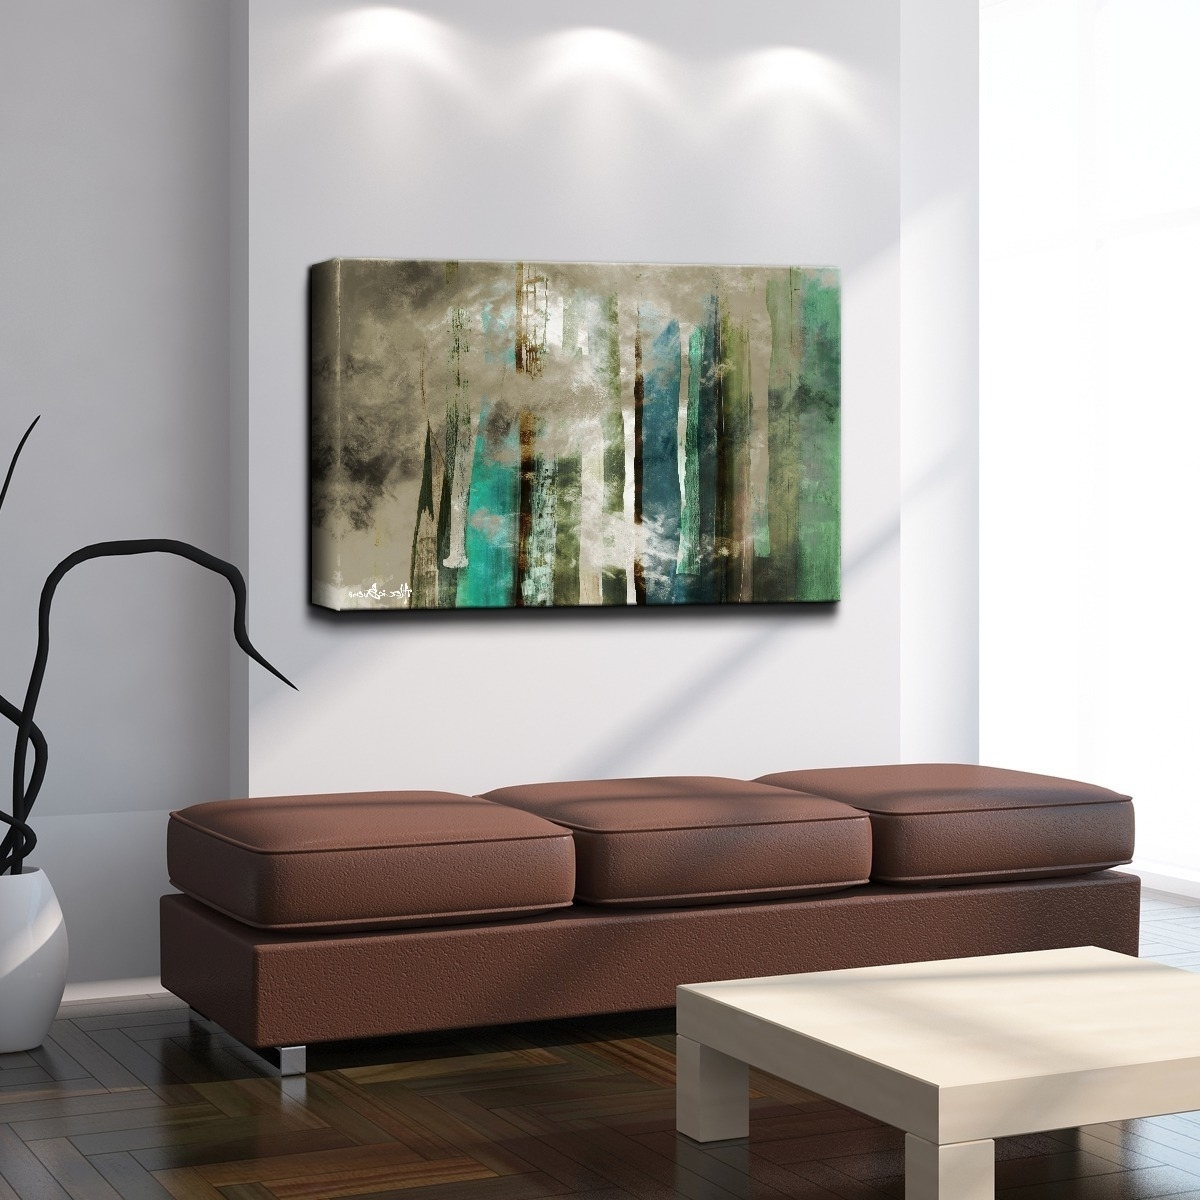 Shop Ready2Hangart 'smash Vi' Oversized Canvas Wall Art – Blue Intended For Best And Newest Cheap Oversized Canvas Wall Art (View 12 of 15)